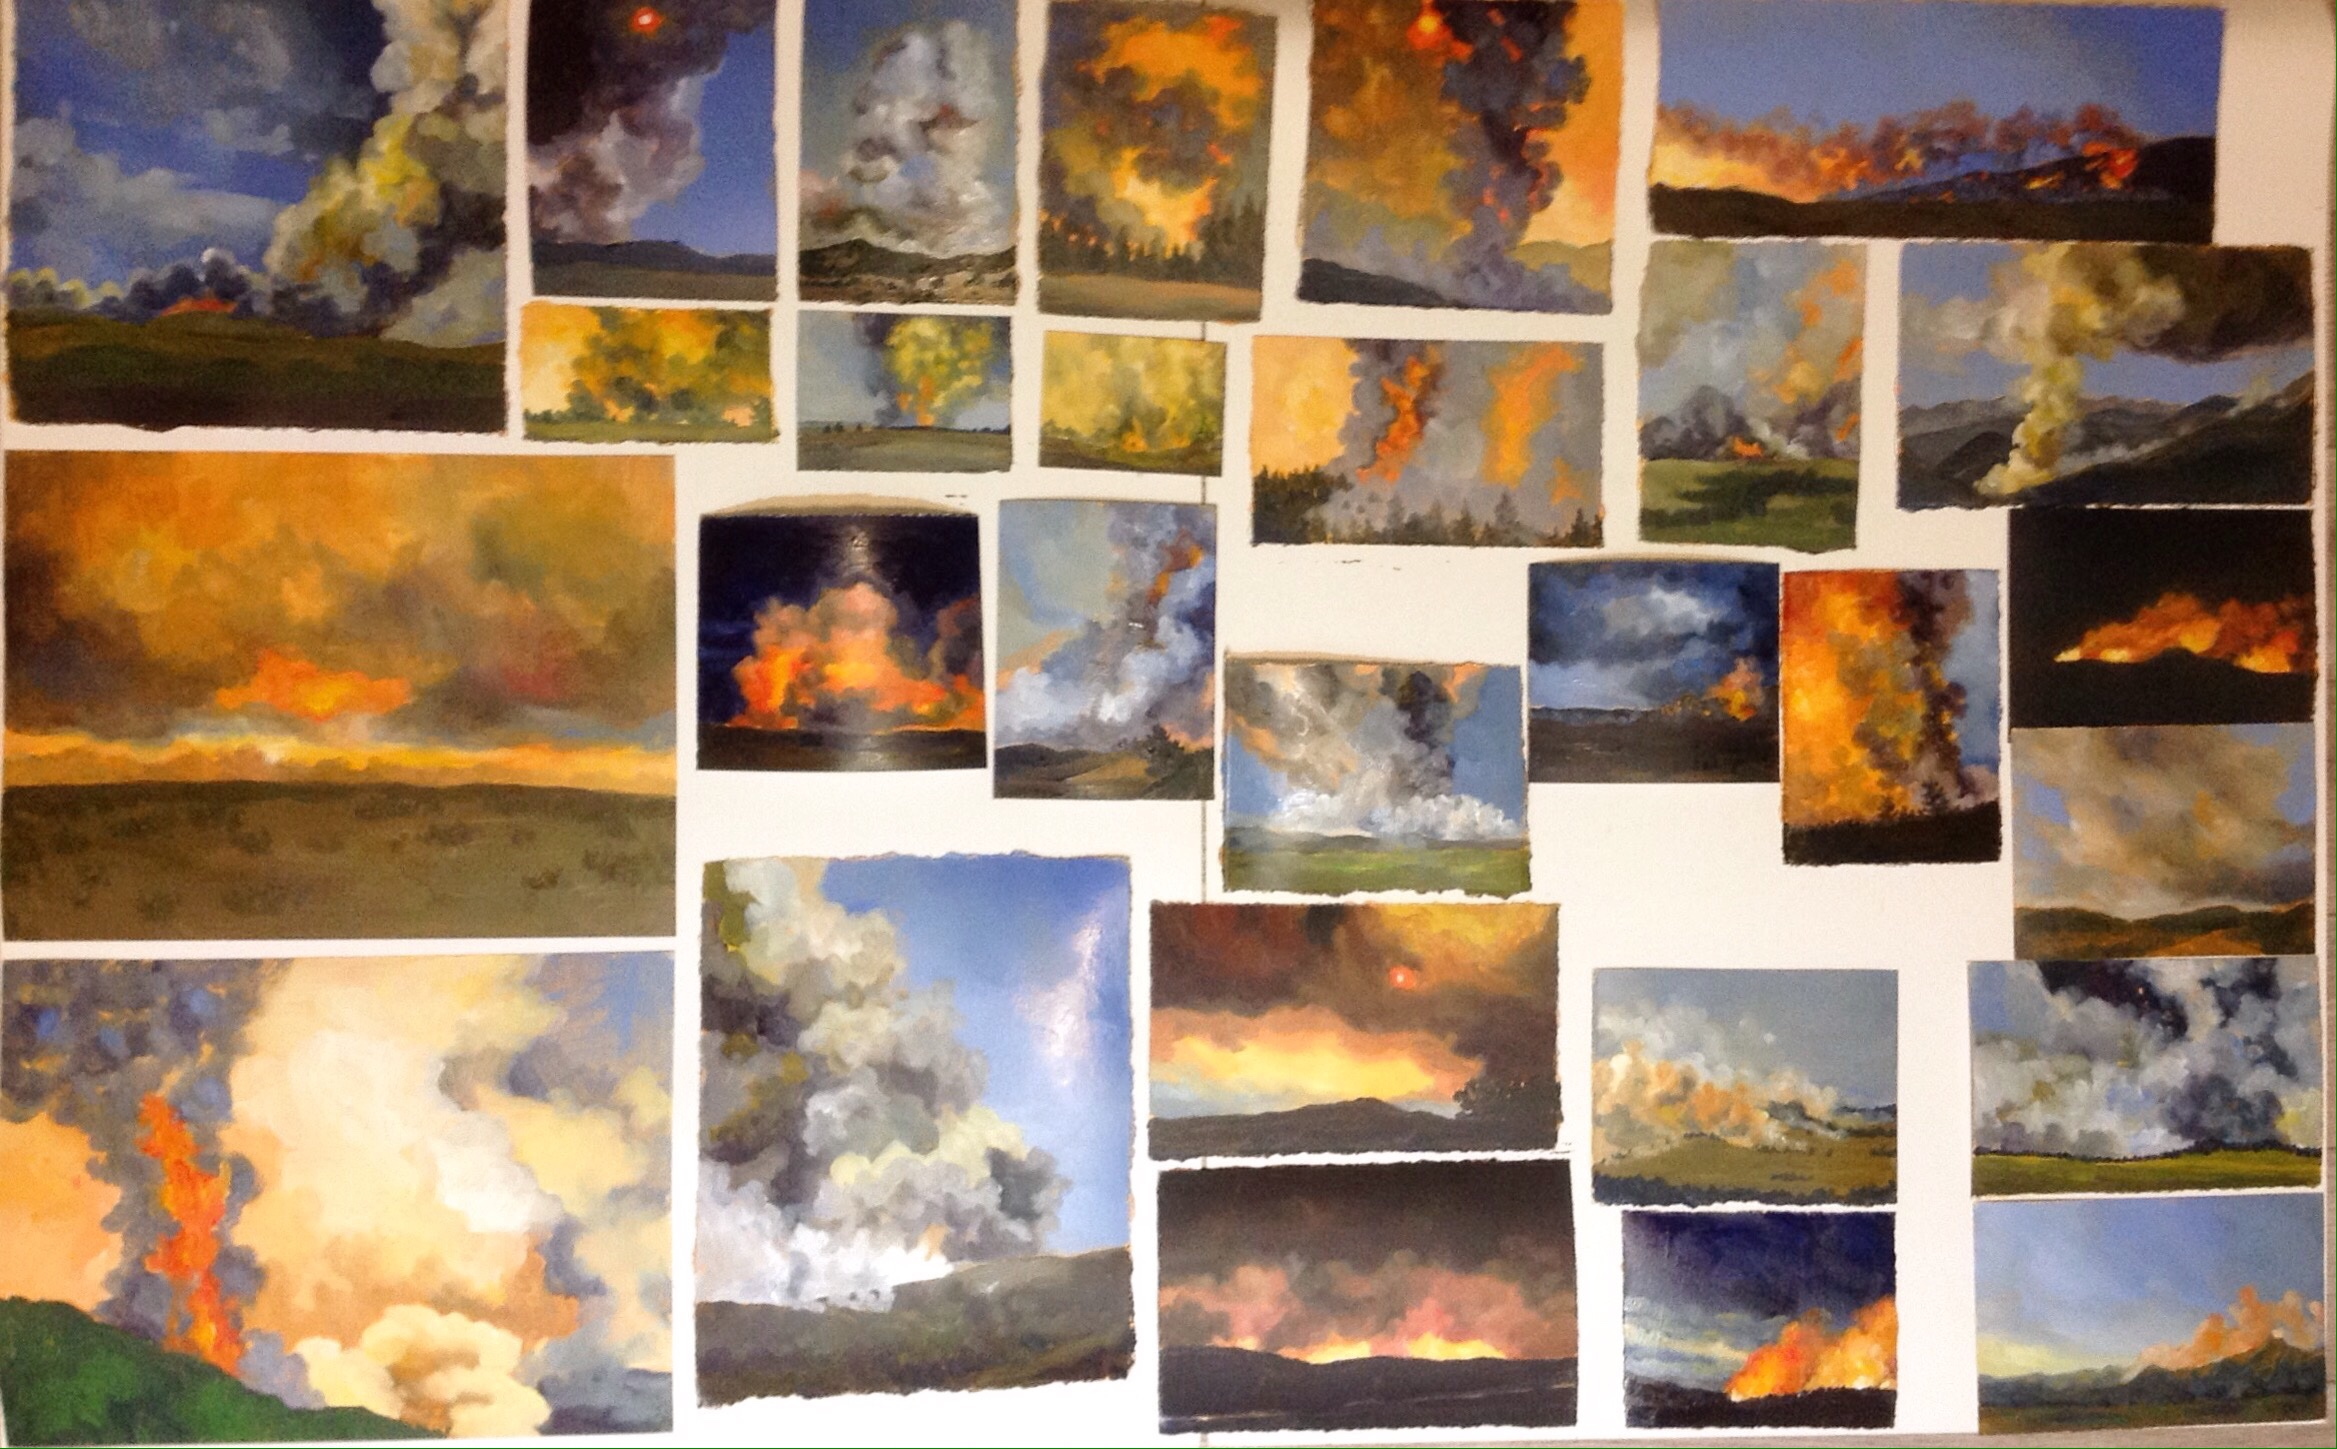 Finished! 28 paintings in one day.Sizes vary from 2x3 inches to 8x10 inches.